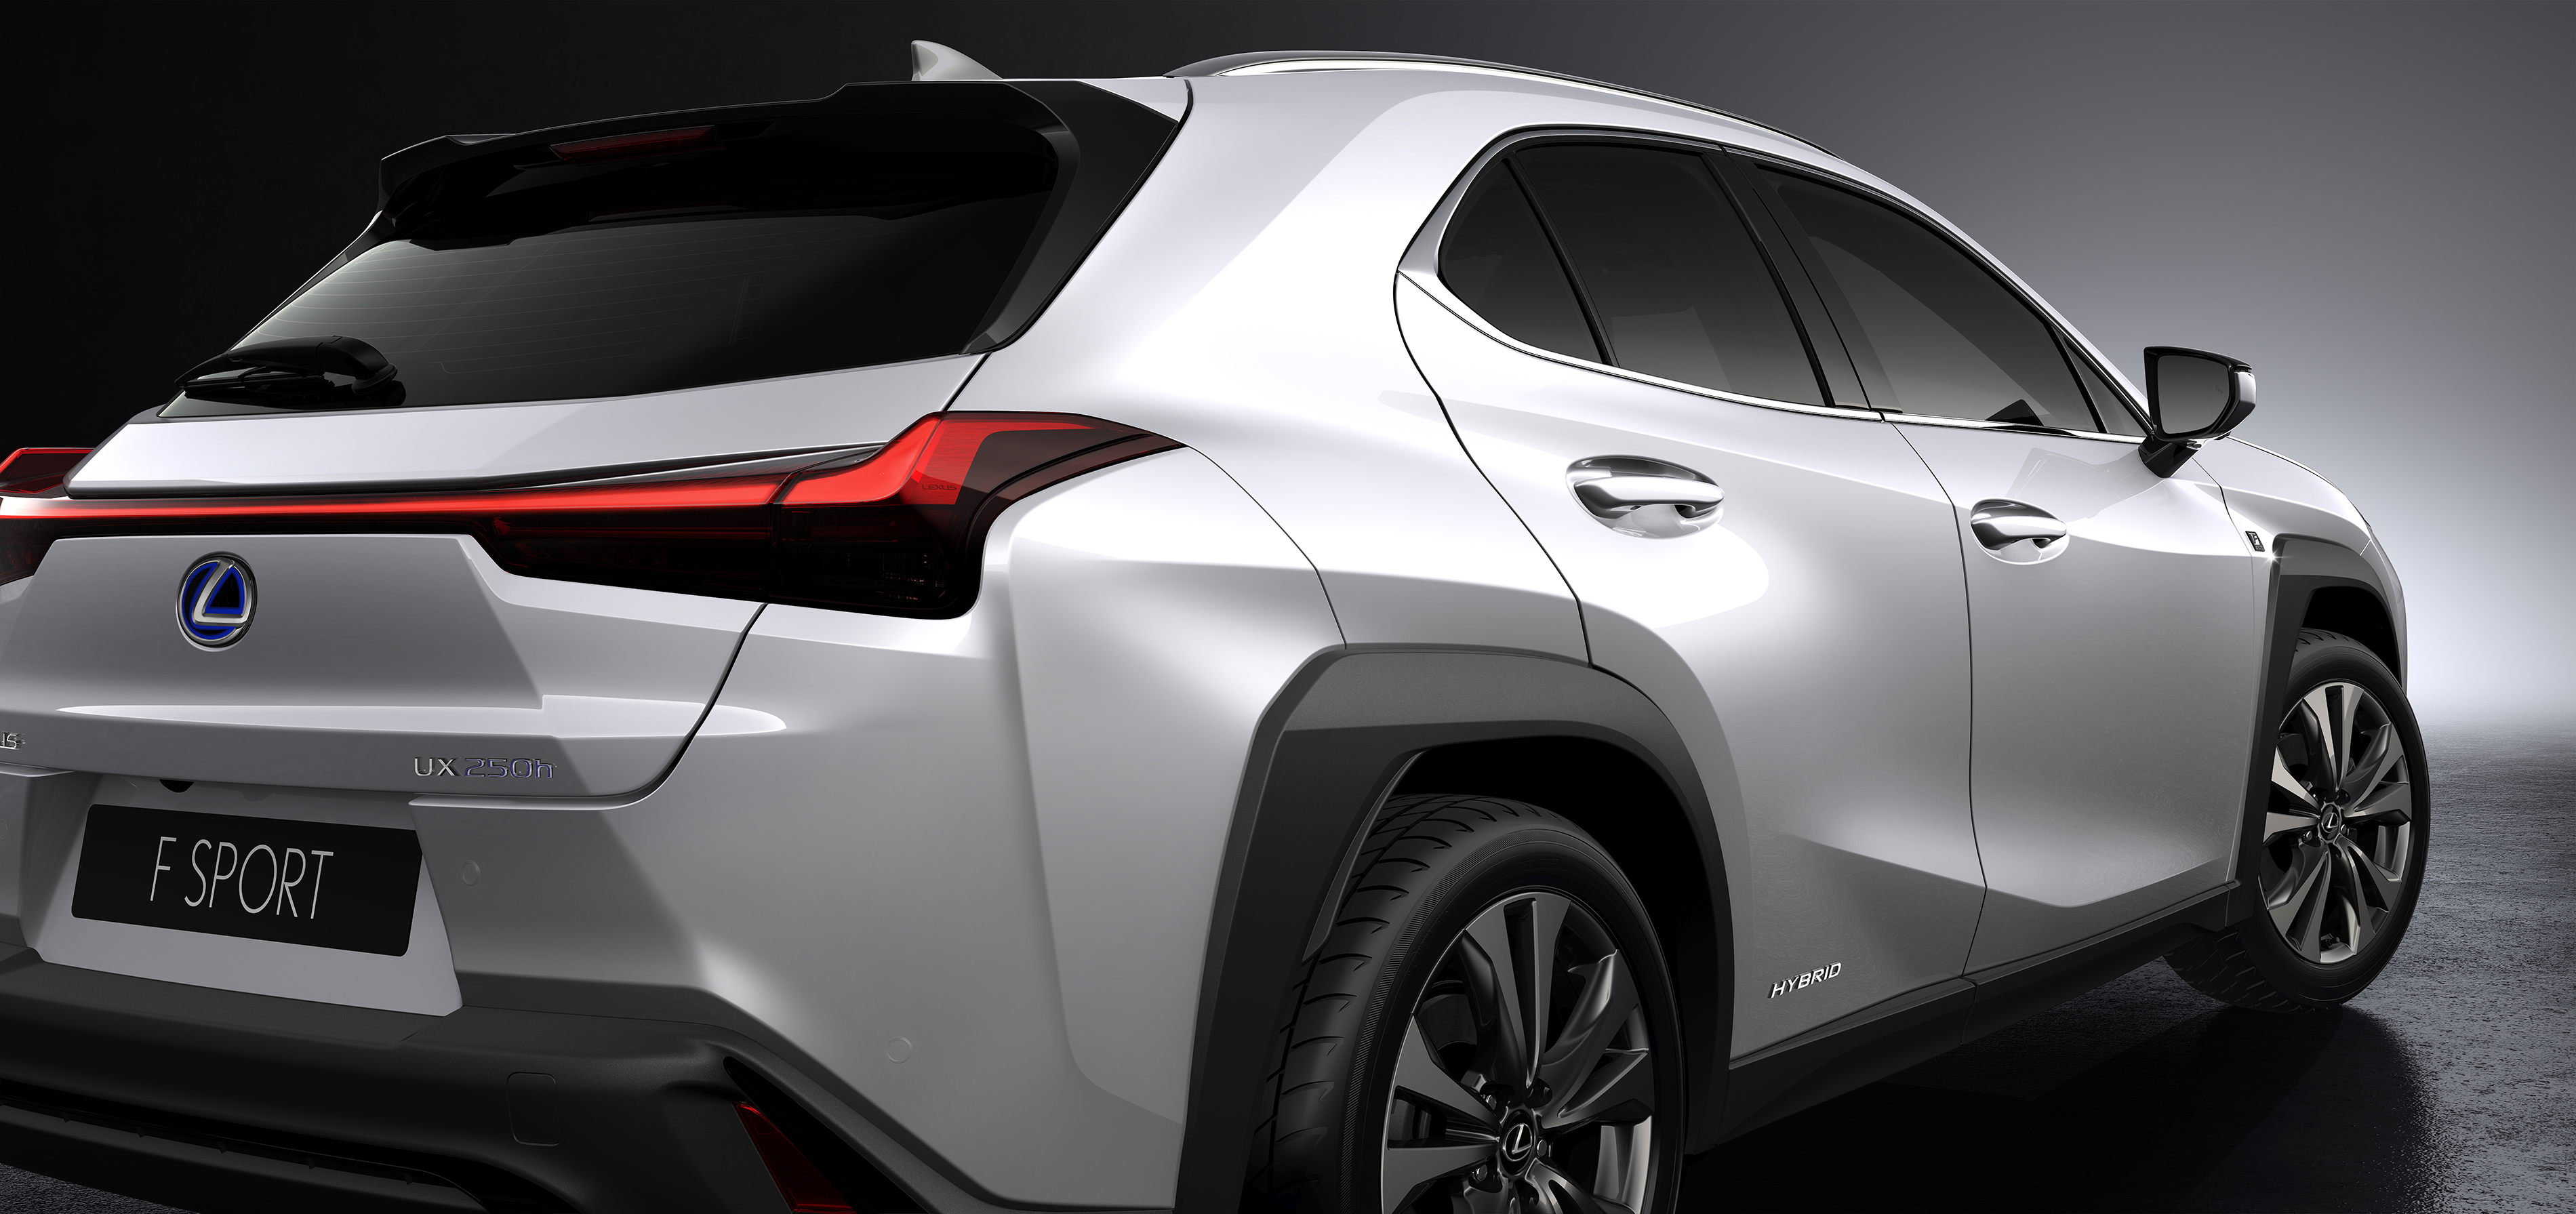 lexus details the ux subcompact crossover in geneva the drive. Black Bedroom Furniture Sets. Home Design Ideas